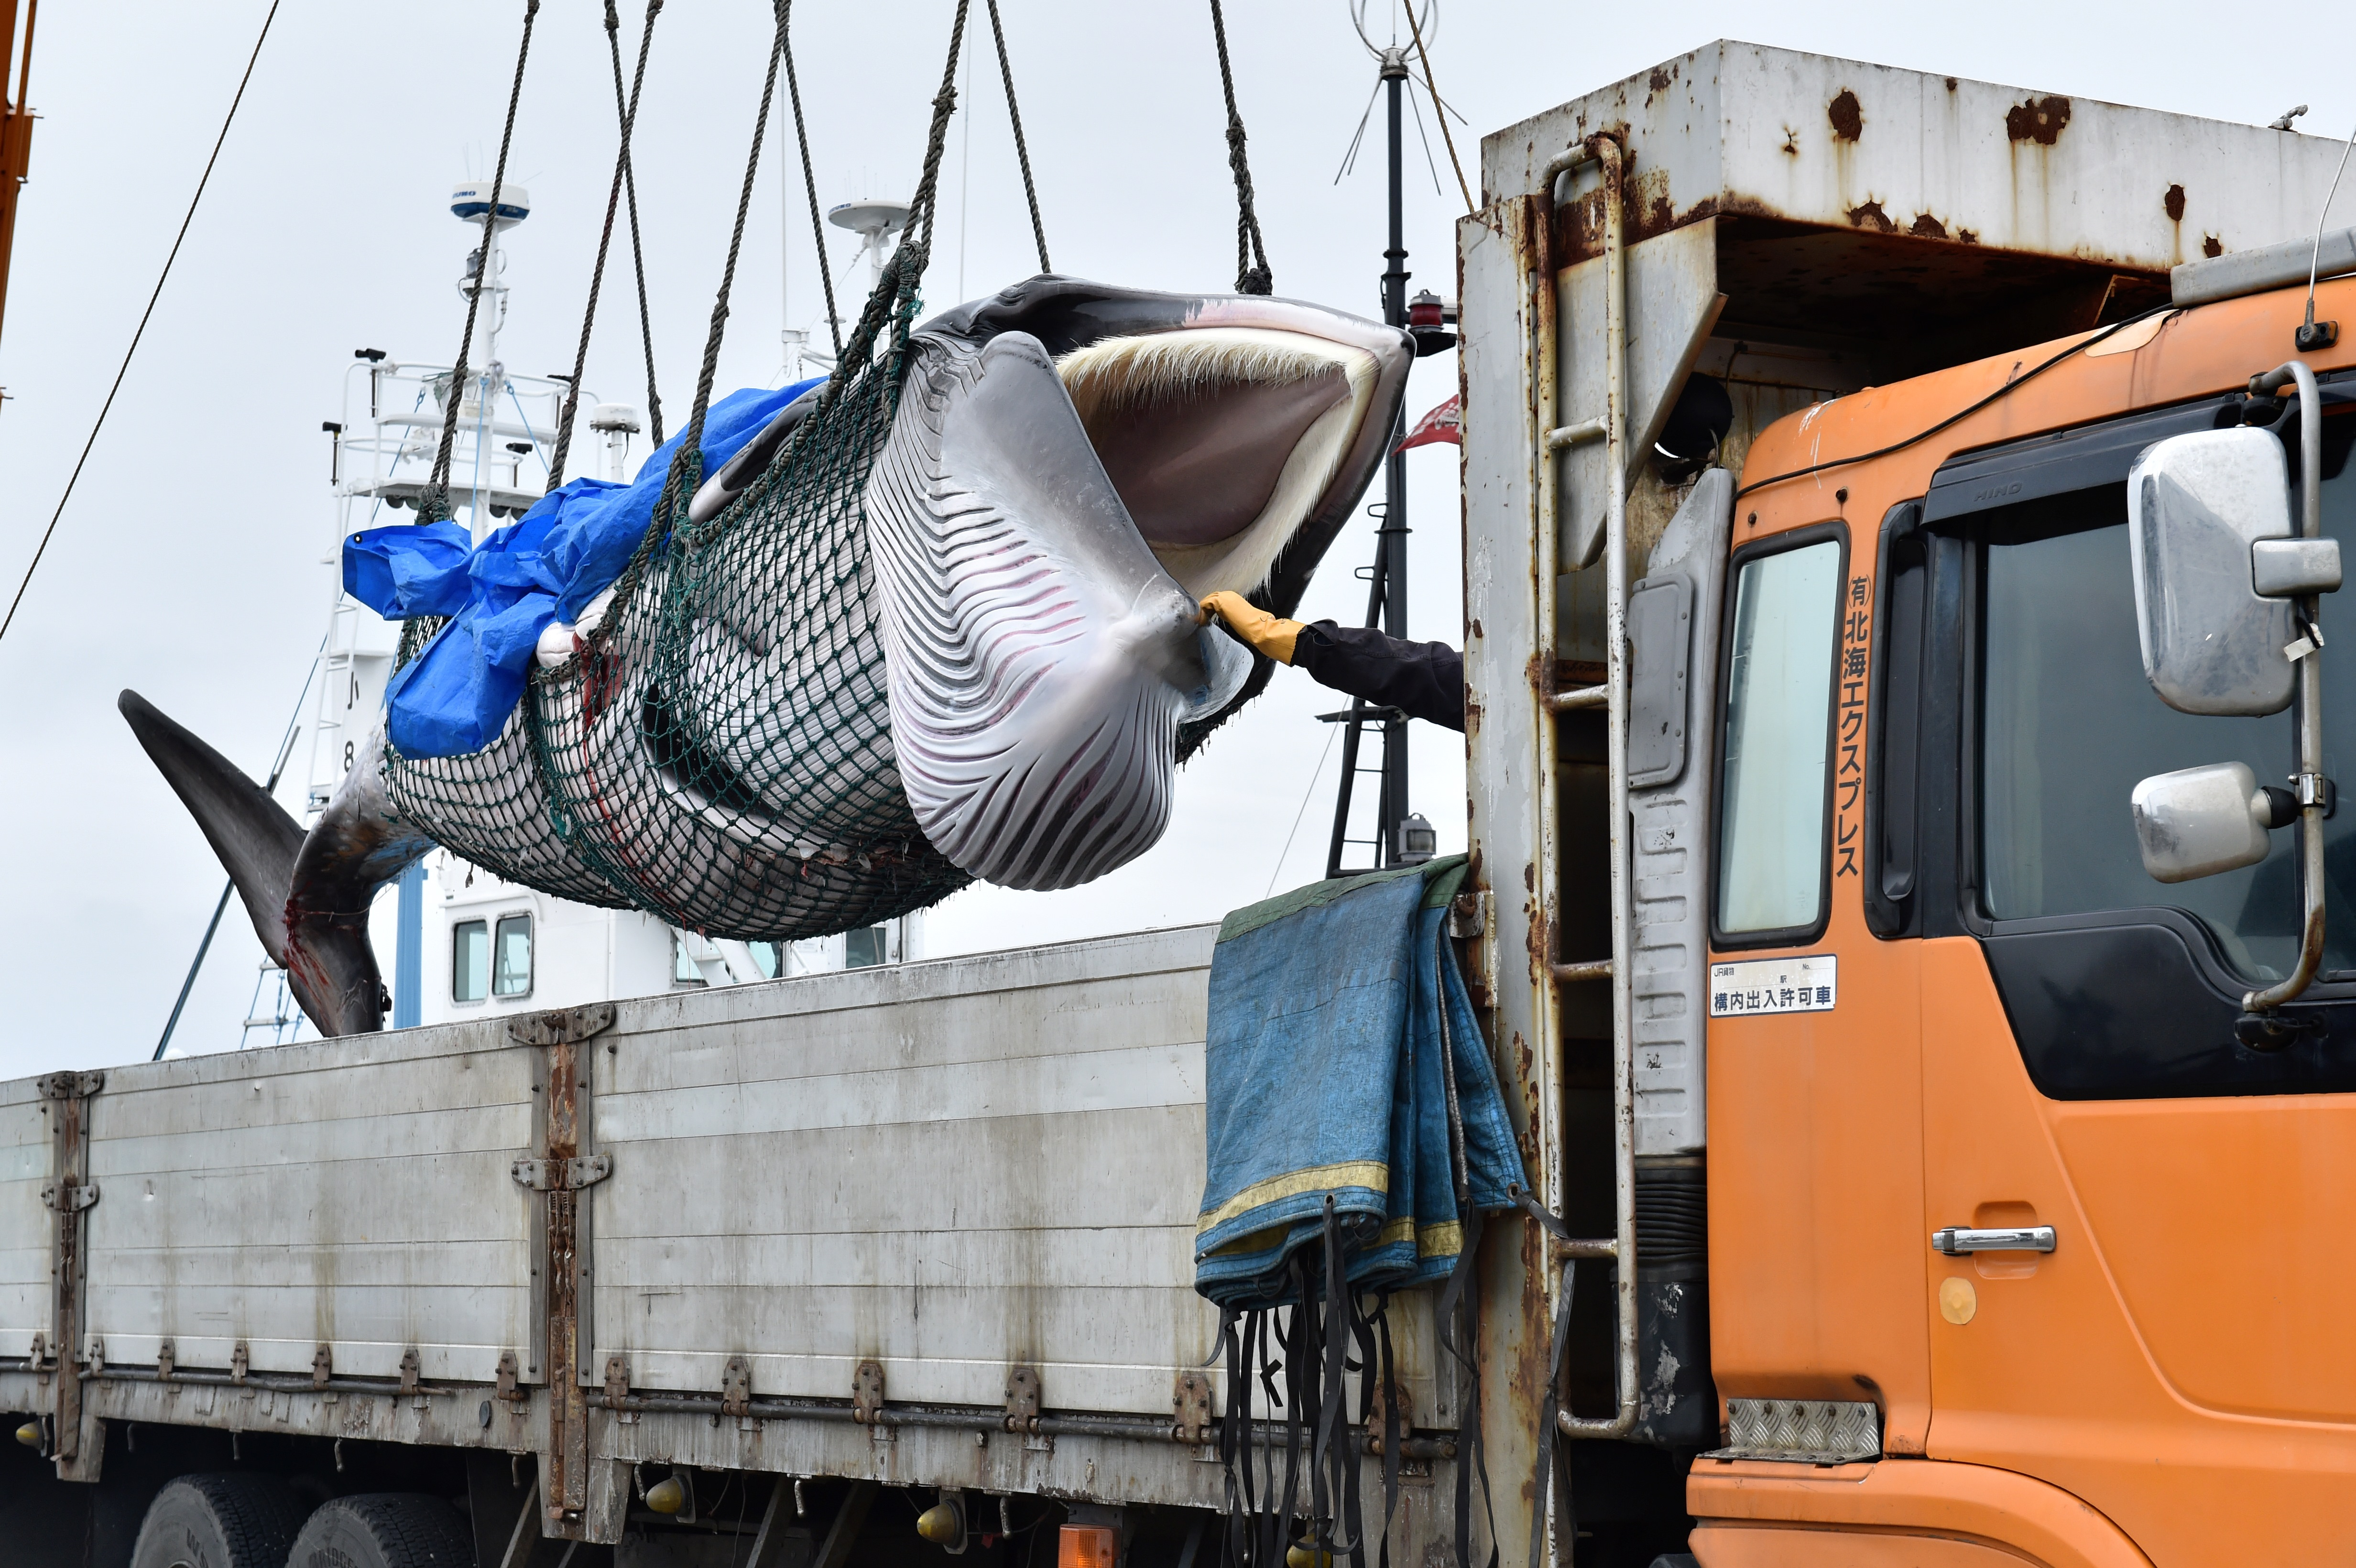 A captured Minke whale is lifted by a crane into a truck bed at a port in Kushiro, Hokkaido Prefecture on July 1, 2019. - Japan began its first commercial whale hunts in more than three decades on July 1, brushing aside outrage over its resumption of a practice that conservationists say is cruel and outdated. (Photo by KAZUHIRO NOGI/AFP/Getty Images)